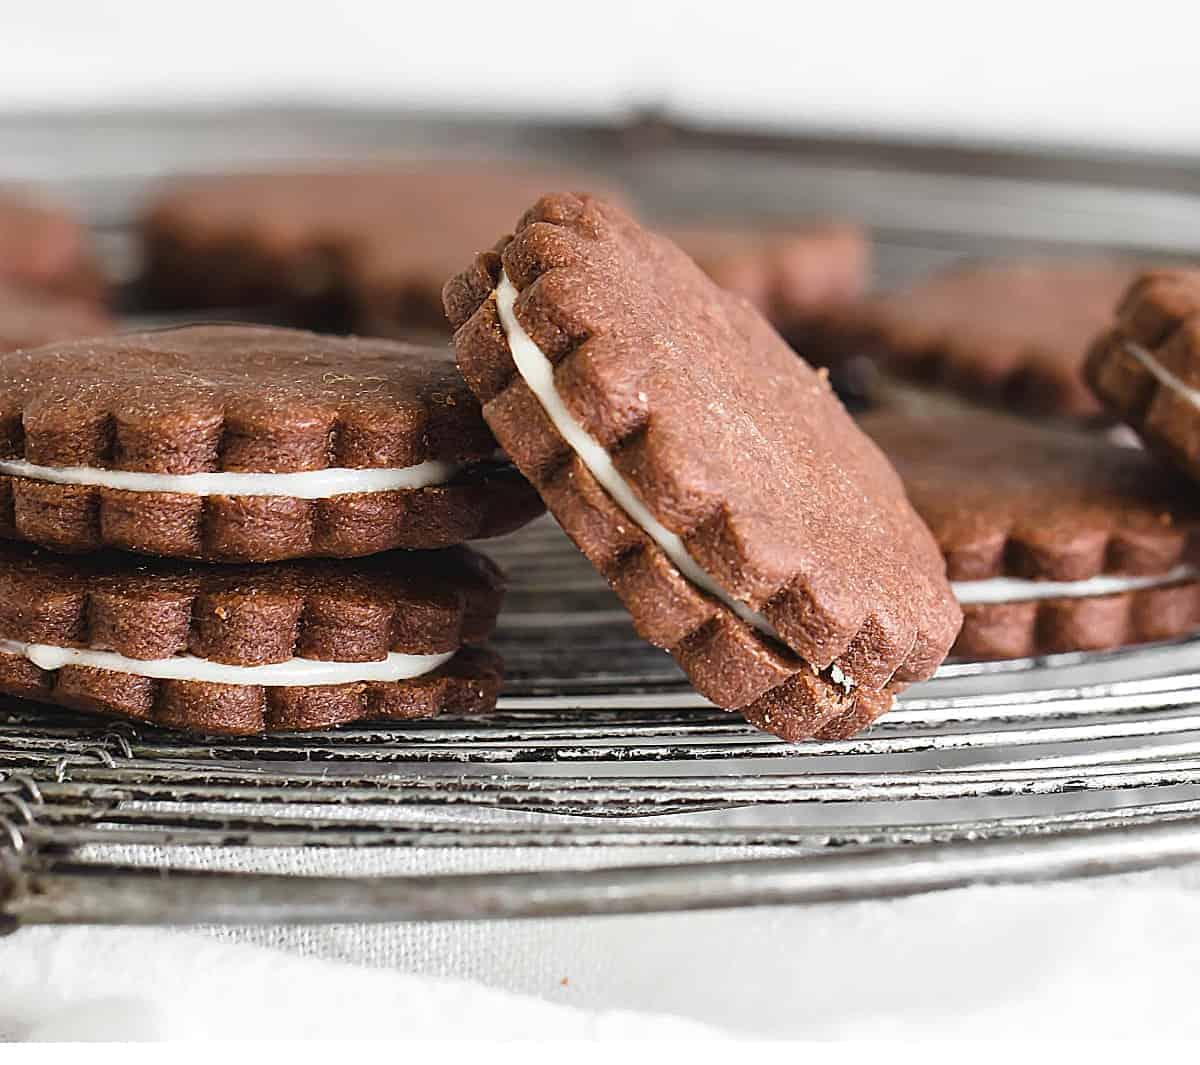 Round chocolate cookies with white filling on wire rack